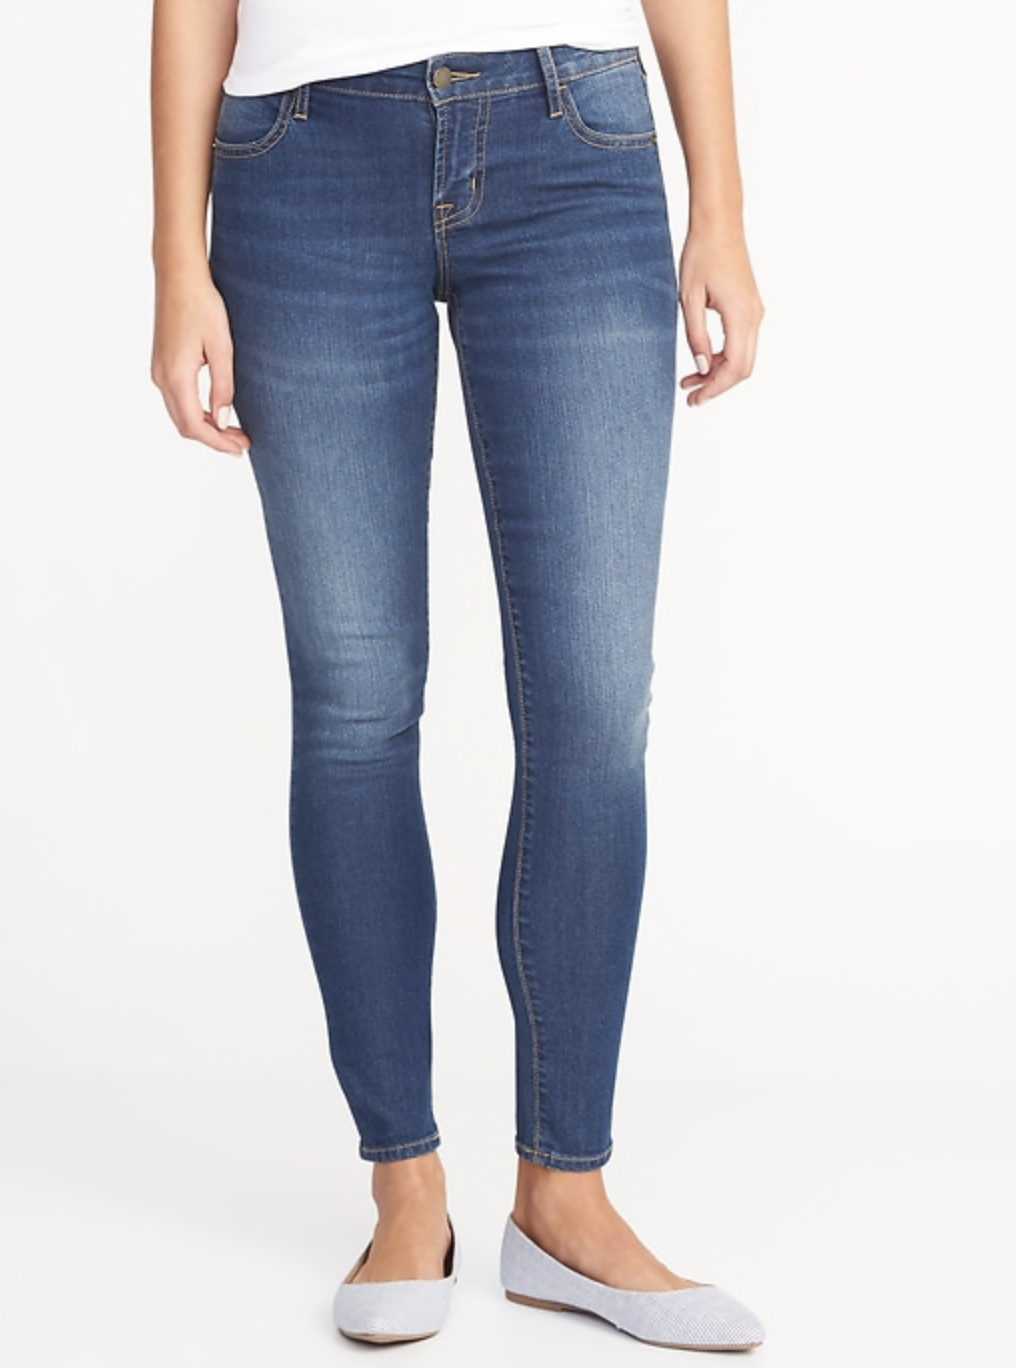 skinny ankle jeans $20